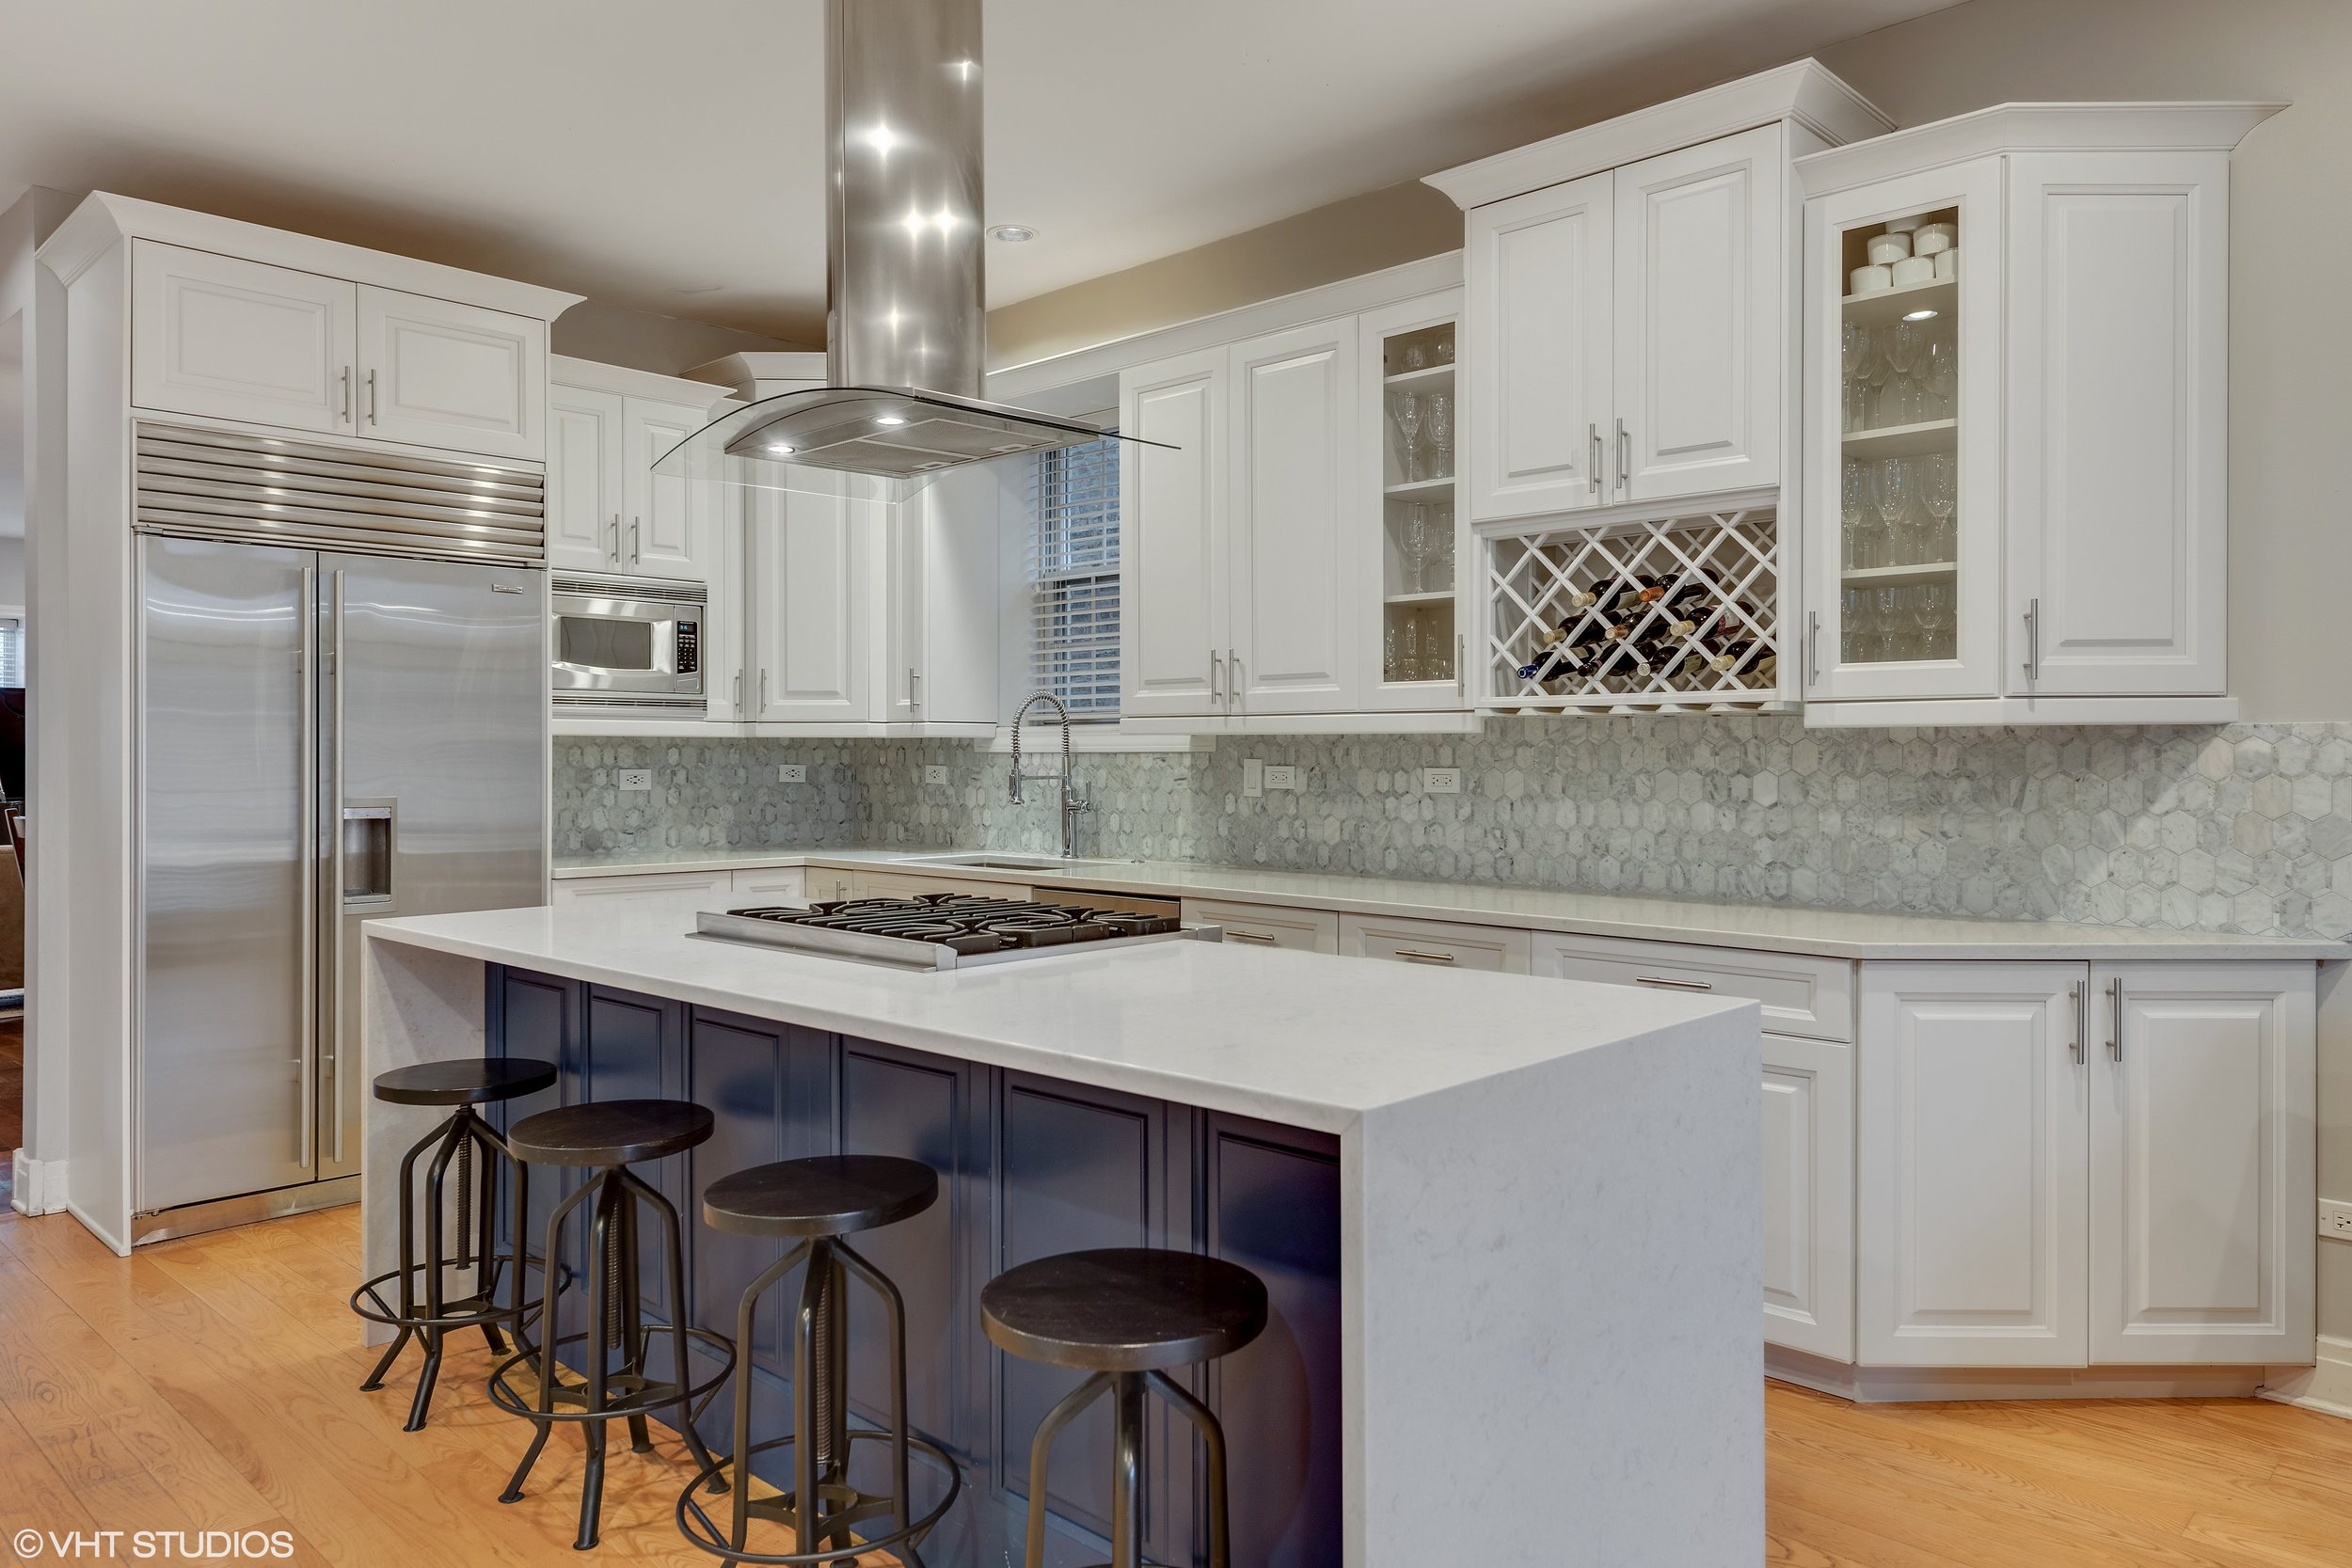 03_2242WMelroseSt_177_Kitchen_HiRes.jpg